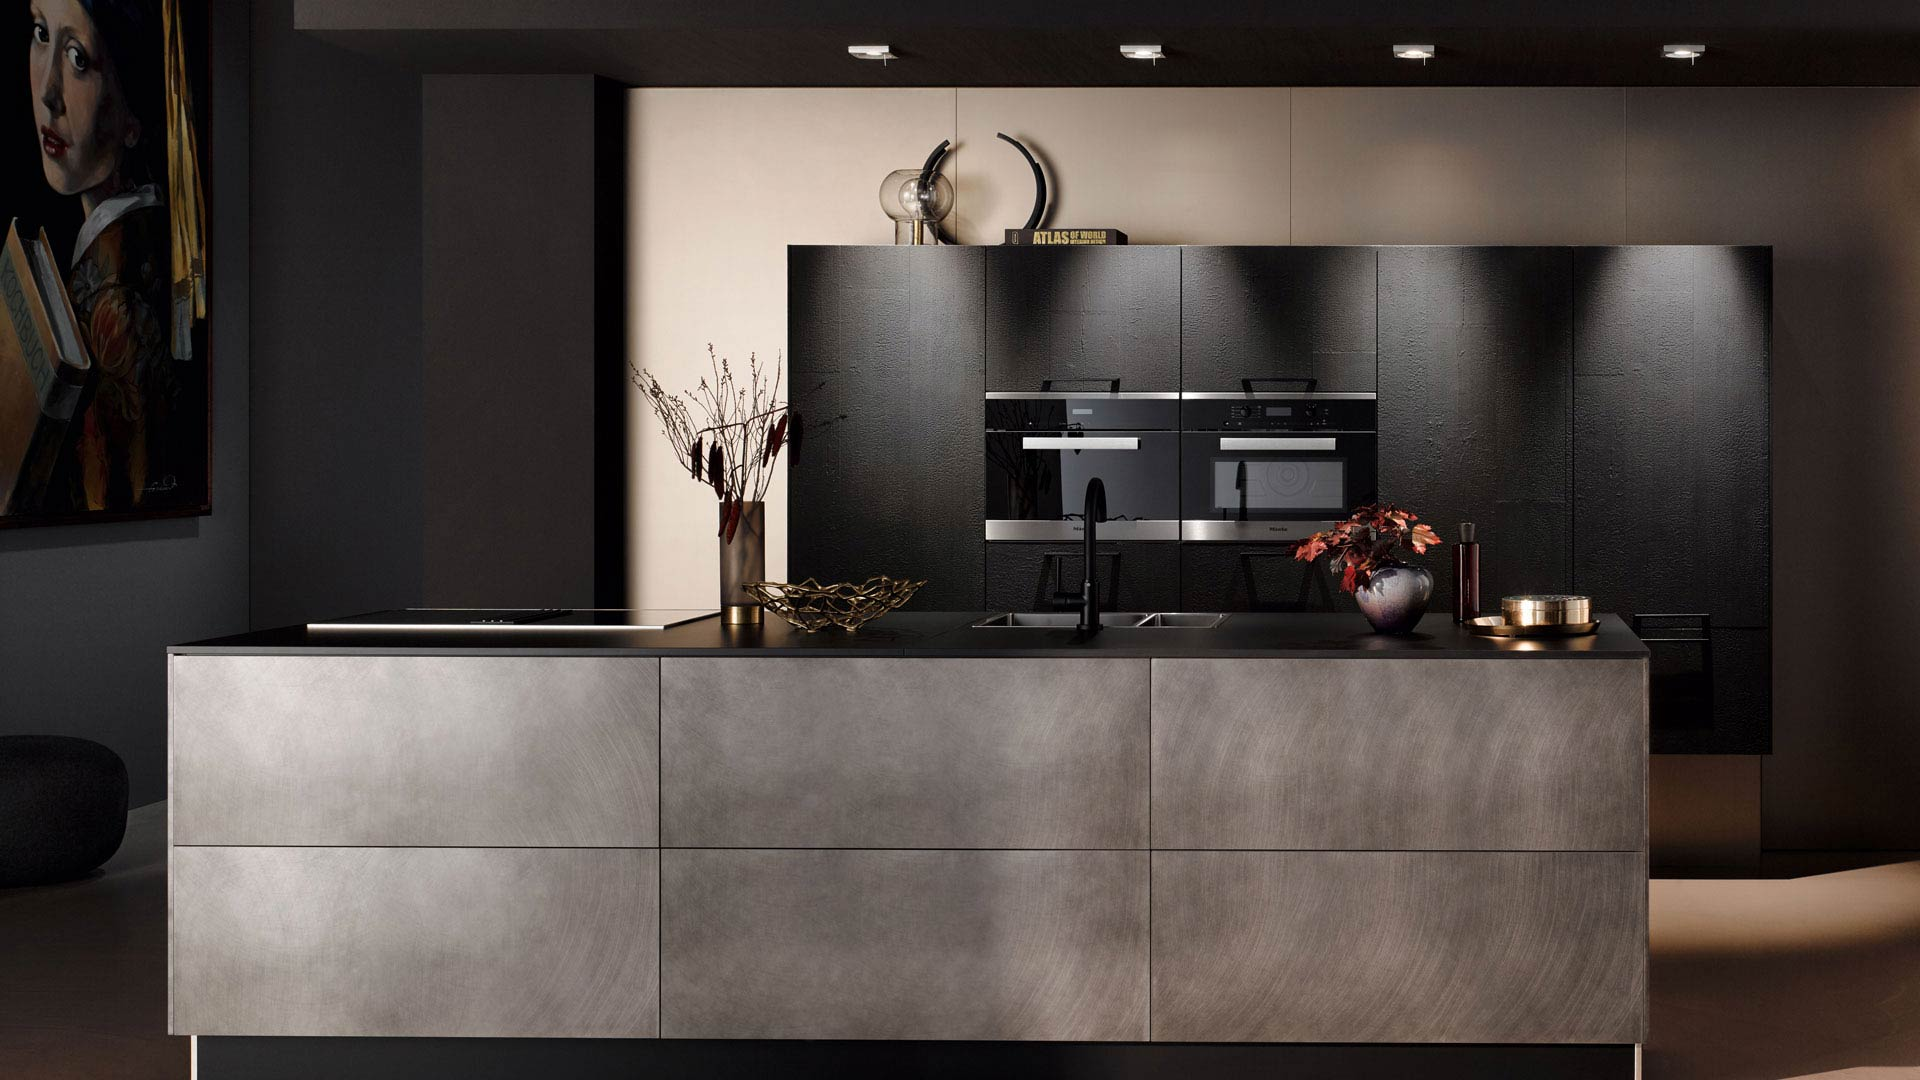 Full Size of Miele Küche Gourmet International Besteckeinsatz Miele Küche Miele Küche Grand Gourmet Klein Miele Küche Holz Küche Miele Küche